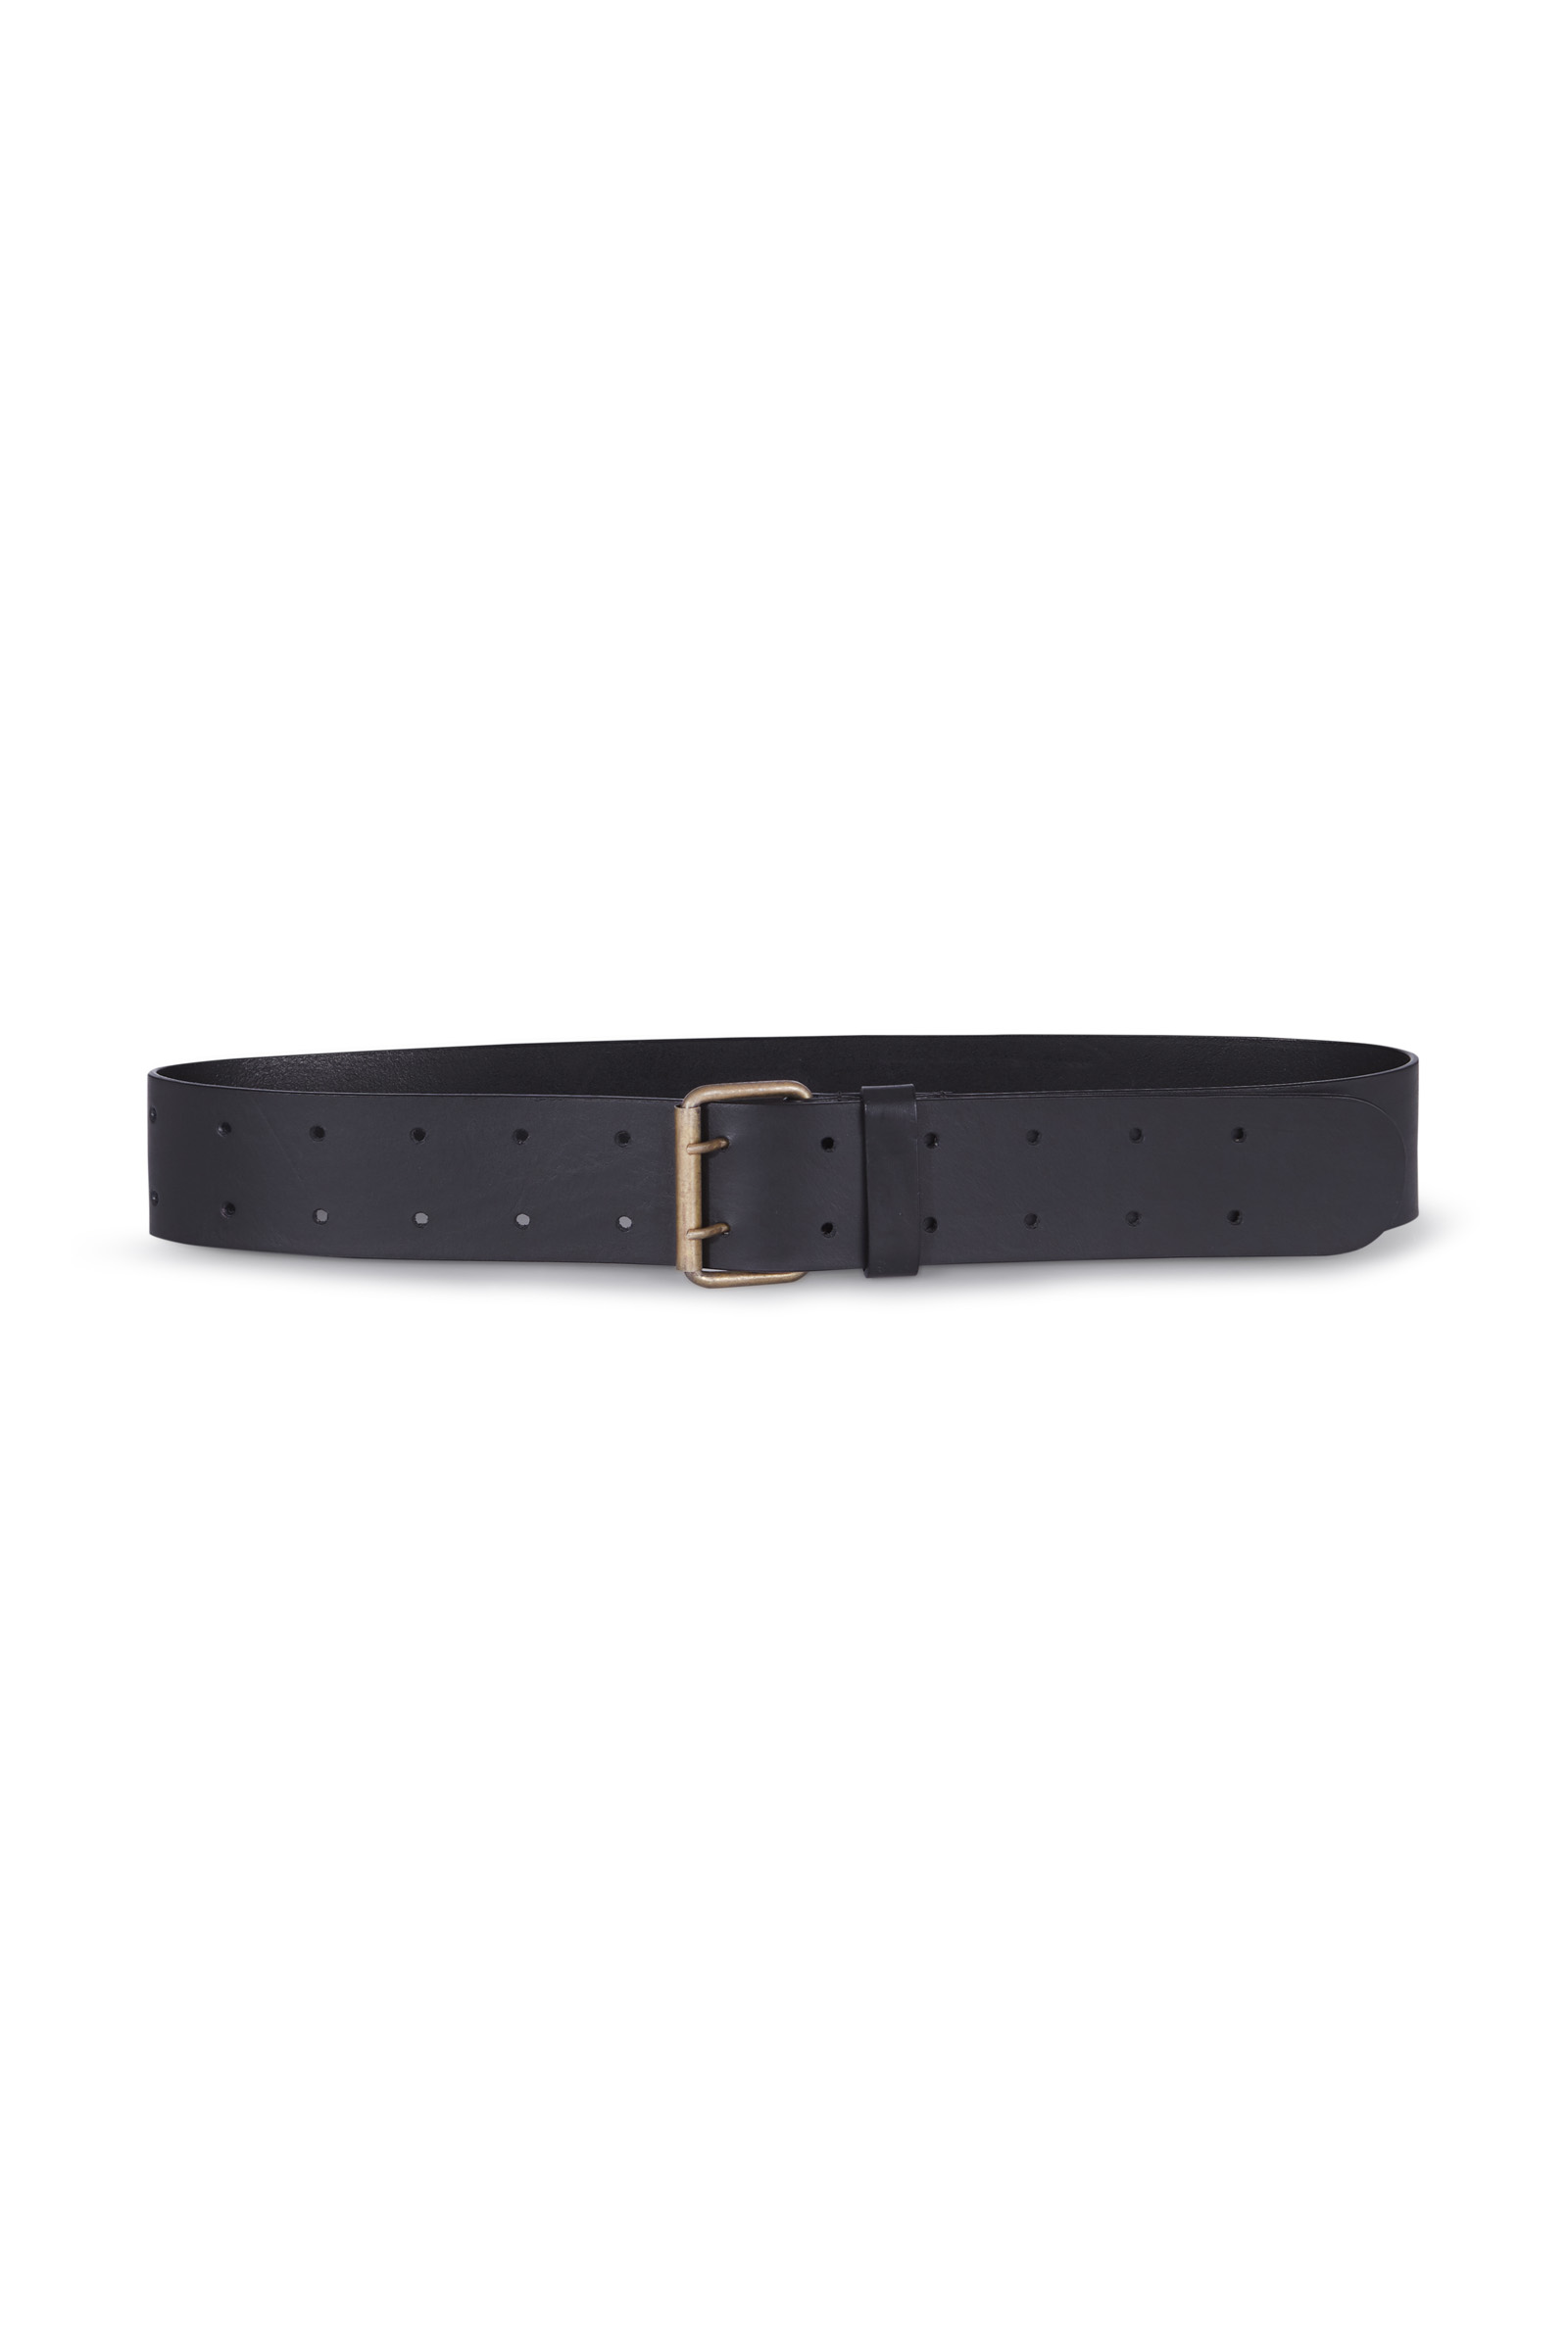 LEATHER THIN BELT - Cortana Moda